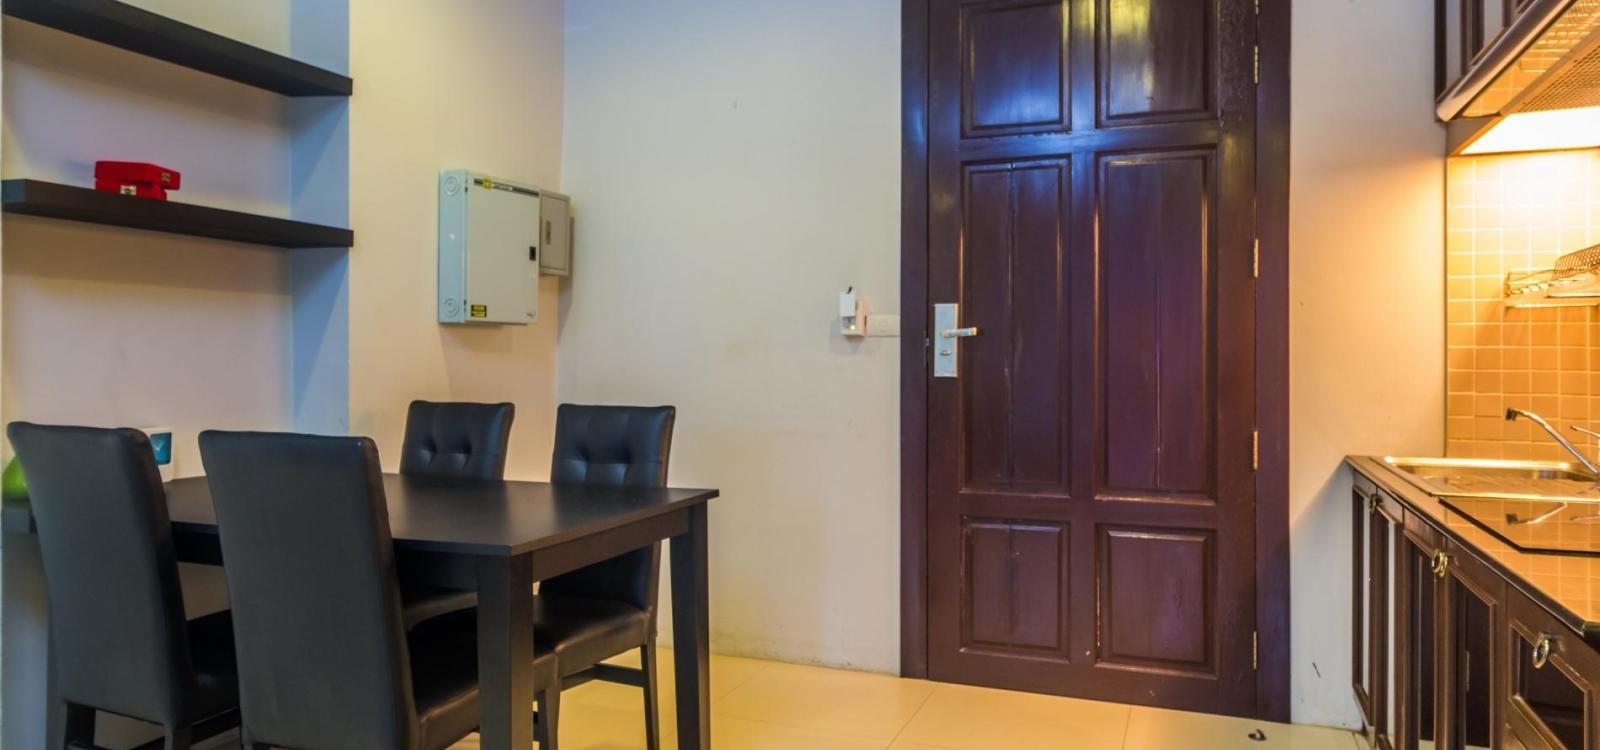 HLC501 - Convenient Patong apartment  for 4. Gym and pool! Walk to market and beach